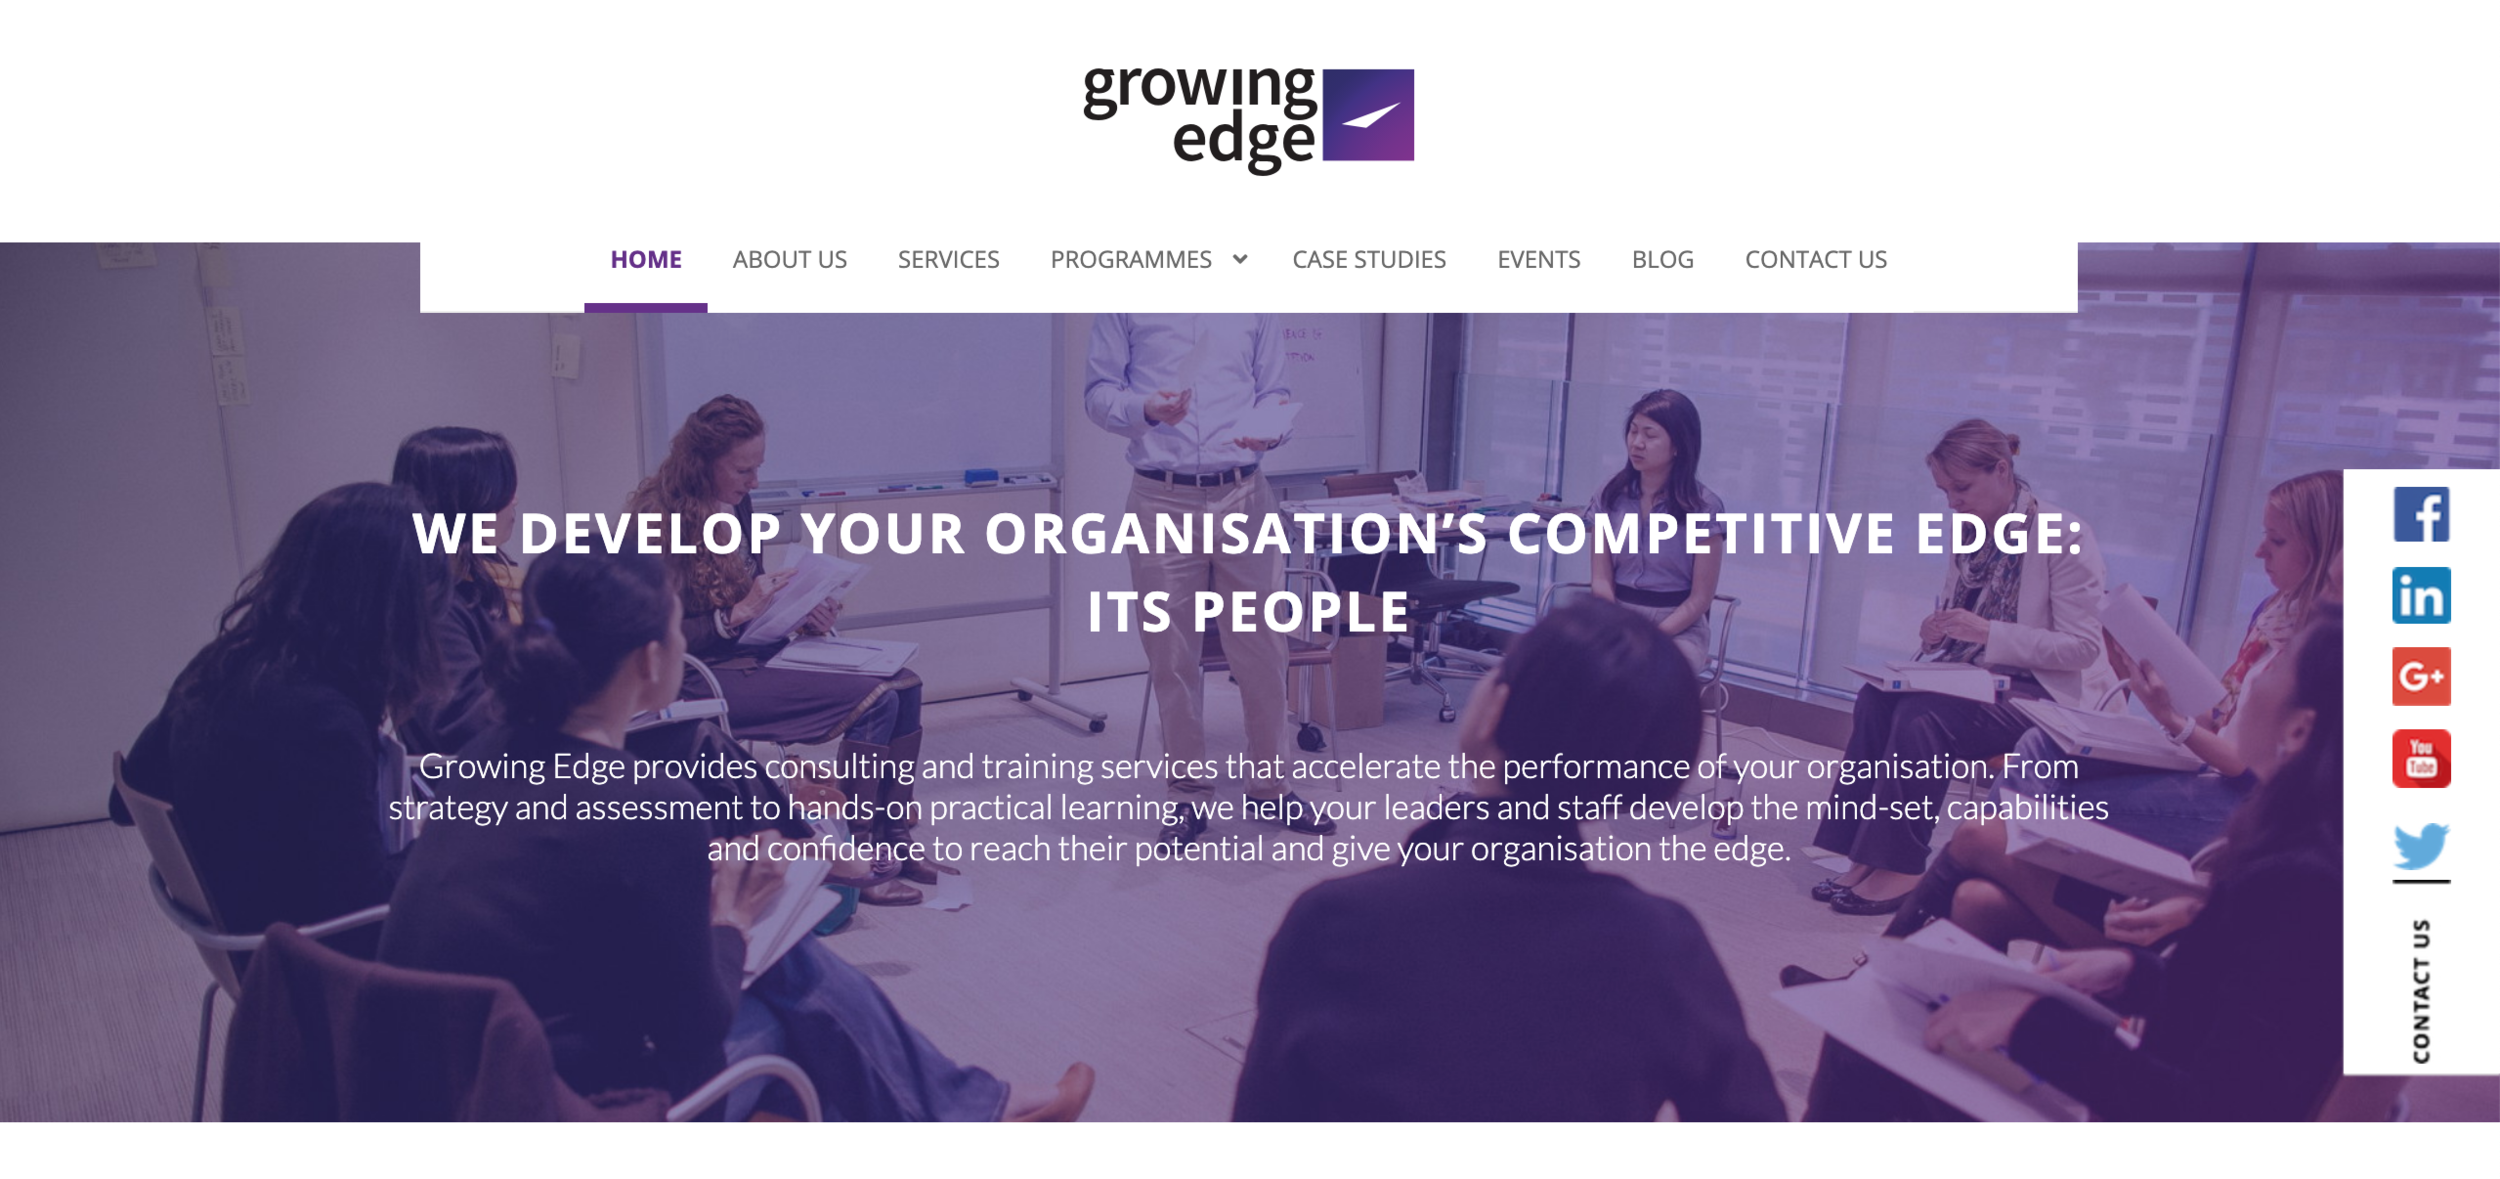 About the Website Copywriting Project - Growing Edge, a consulting and training services organisation, engaged my Website Copywriting Services for the revamp of their site. As the Digital Copywriter on the project, I was involved from project kickoff, working with the team to develop the messaging and website content as well as layout and user experience journey.